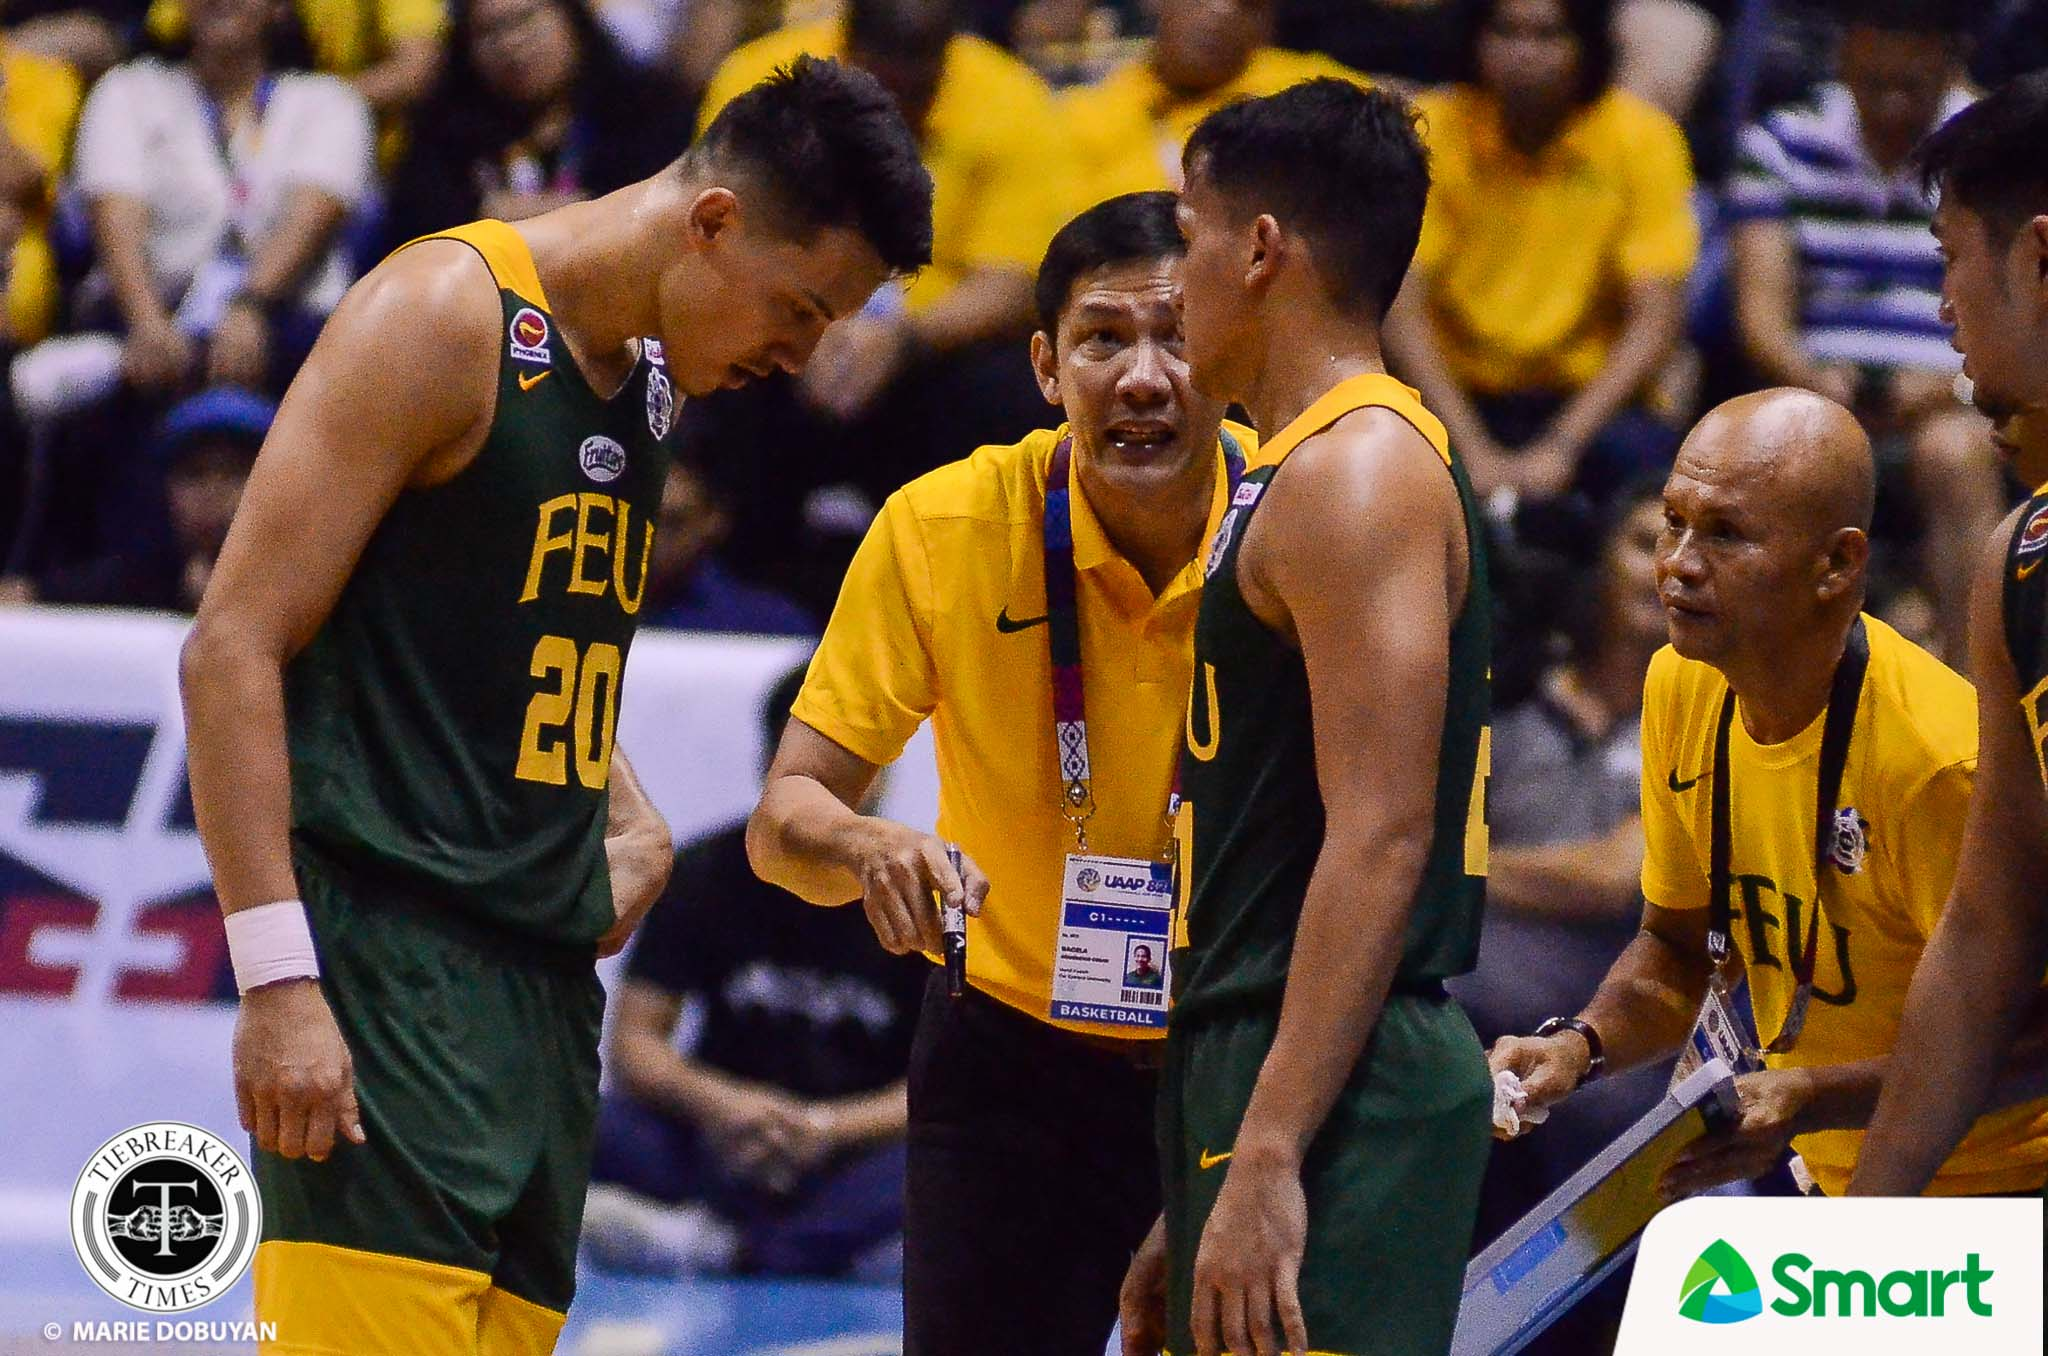 Tiebreaker Times FEU will continue on with guard tradition, says Olsen Racela Basketball FEU News UAAP  UAAP Season 82 Men's Basketball UAAP Season 82 Olsen Racela FEU Men's Basketball